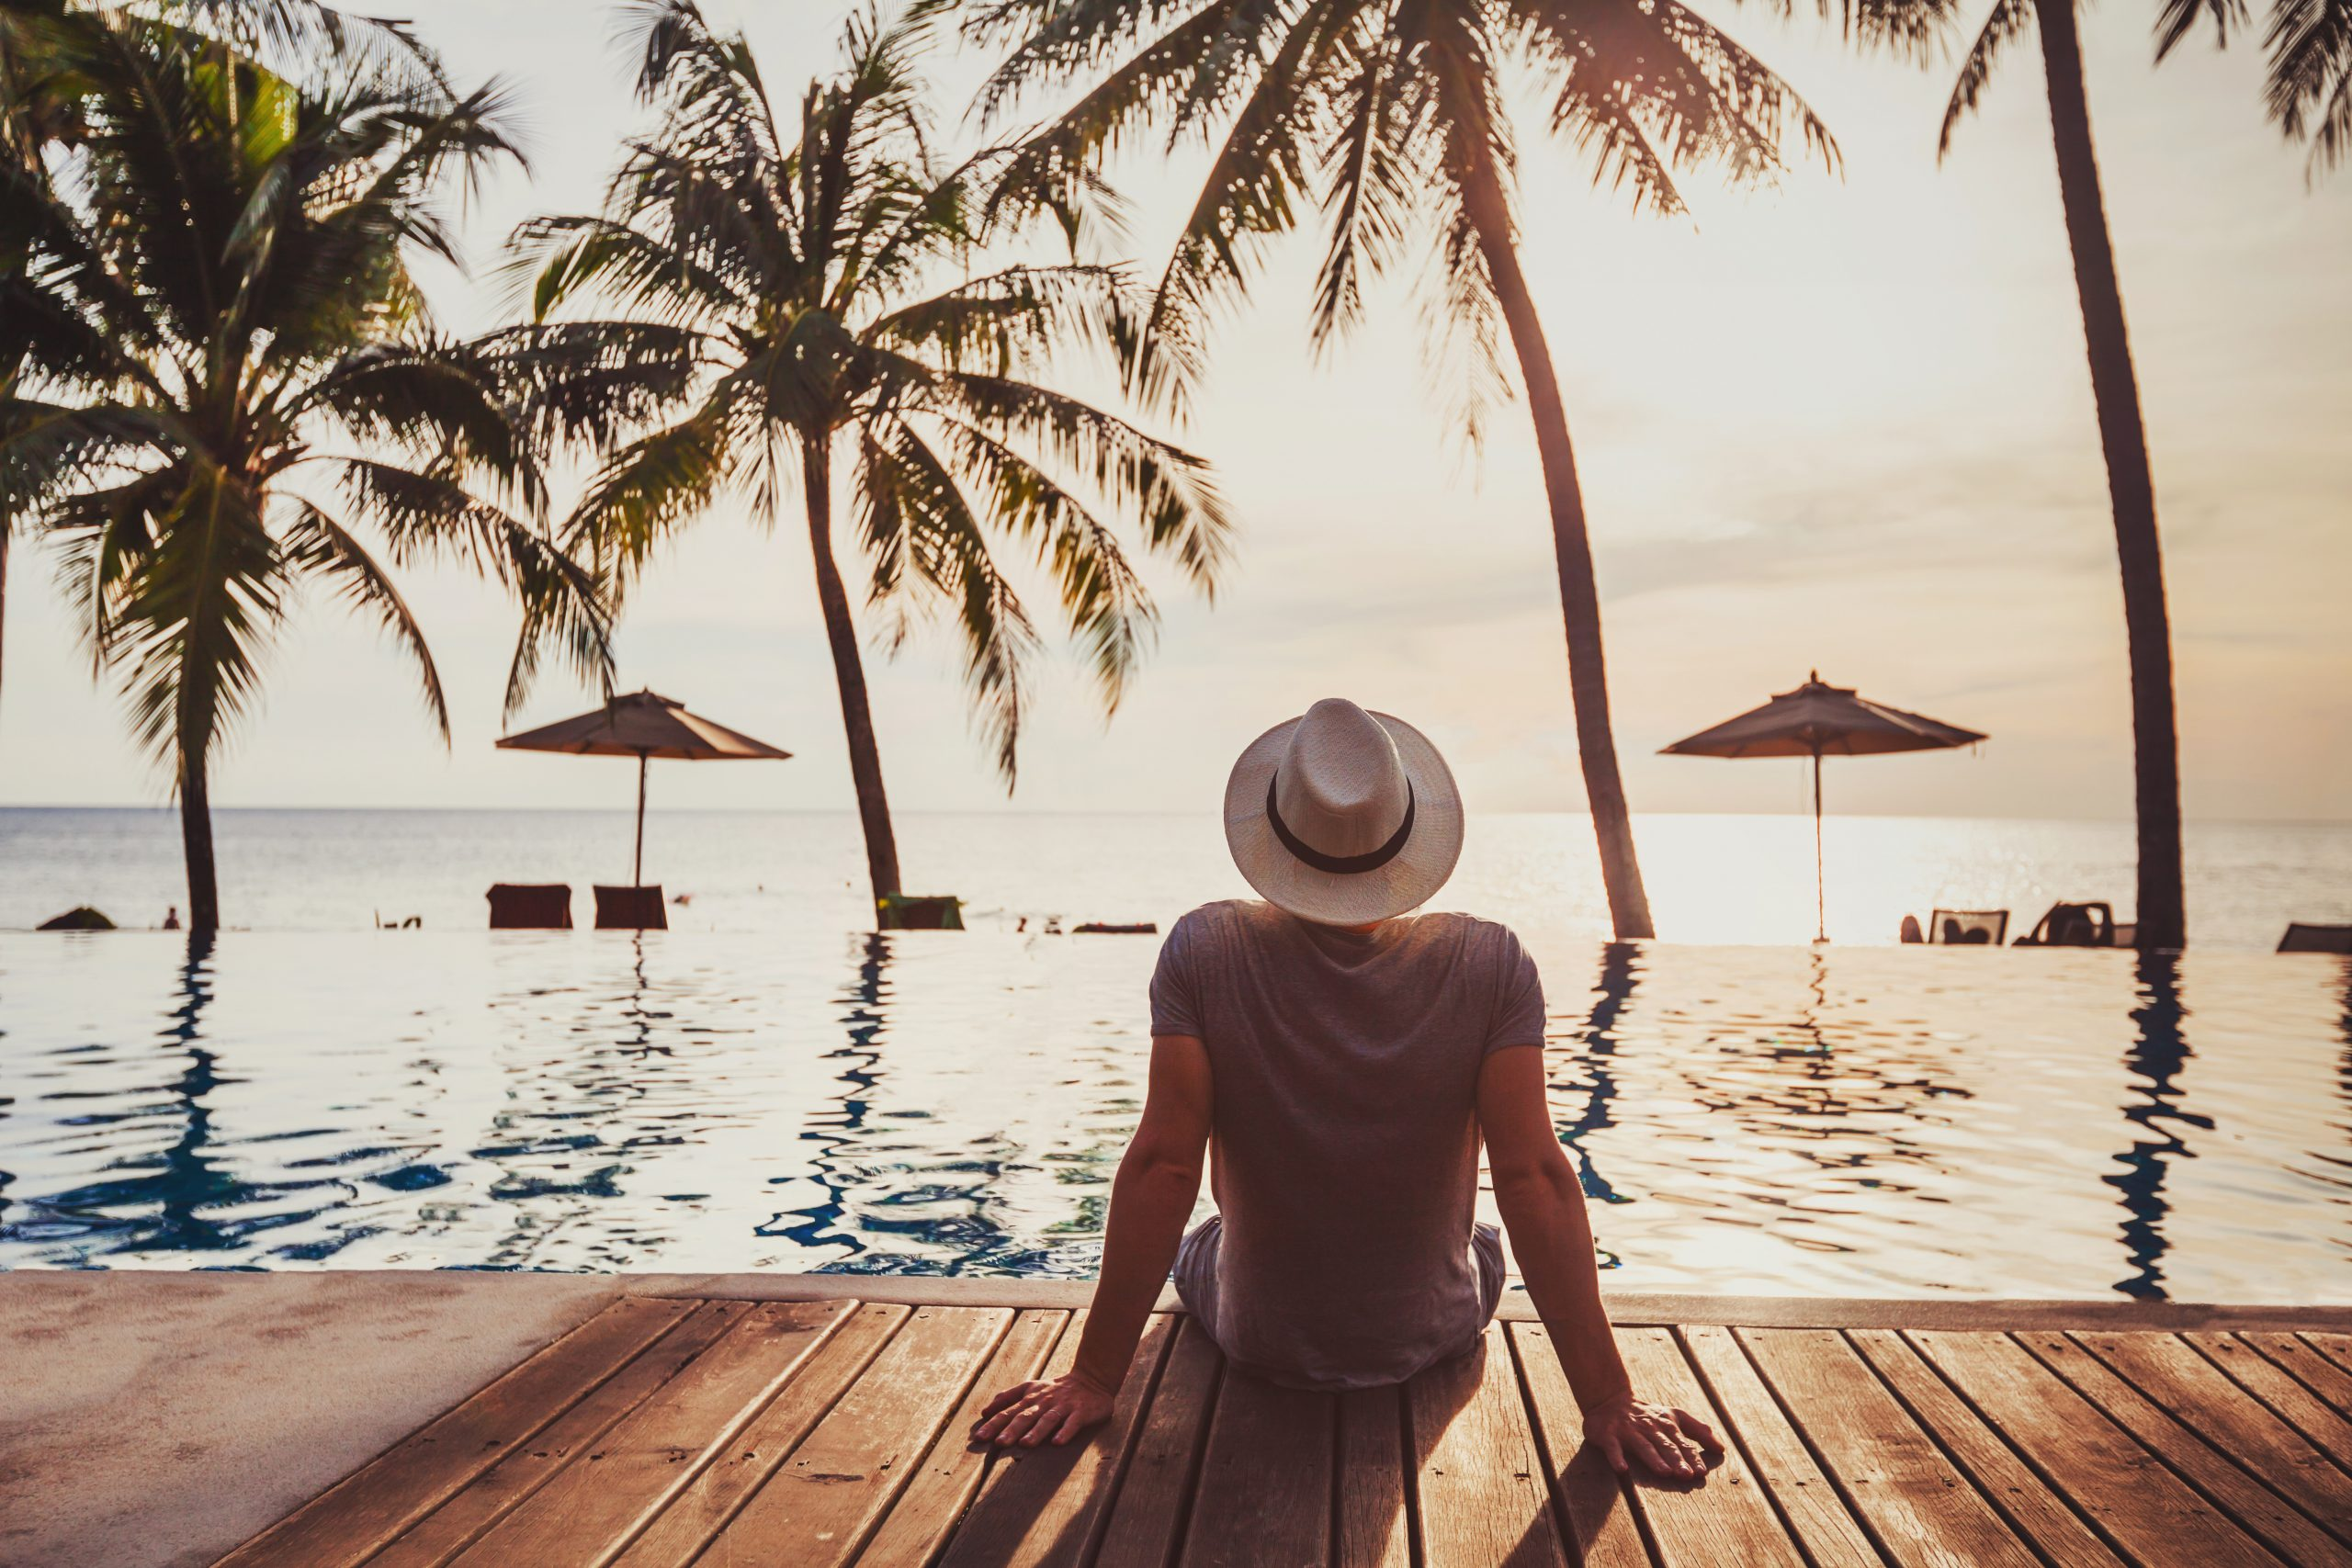 tourist in luxury beach hotel near luxurious swimming pool at sunset, tropical exotic holidays vacation, tourism and travel